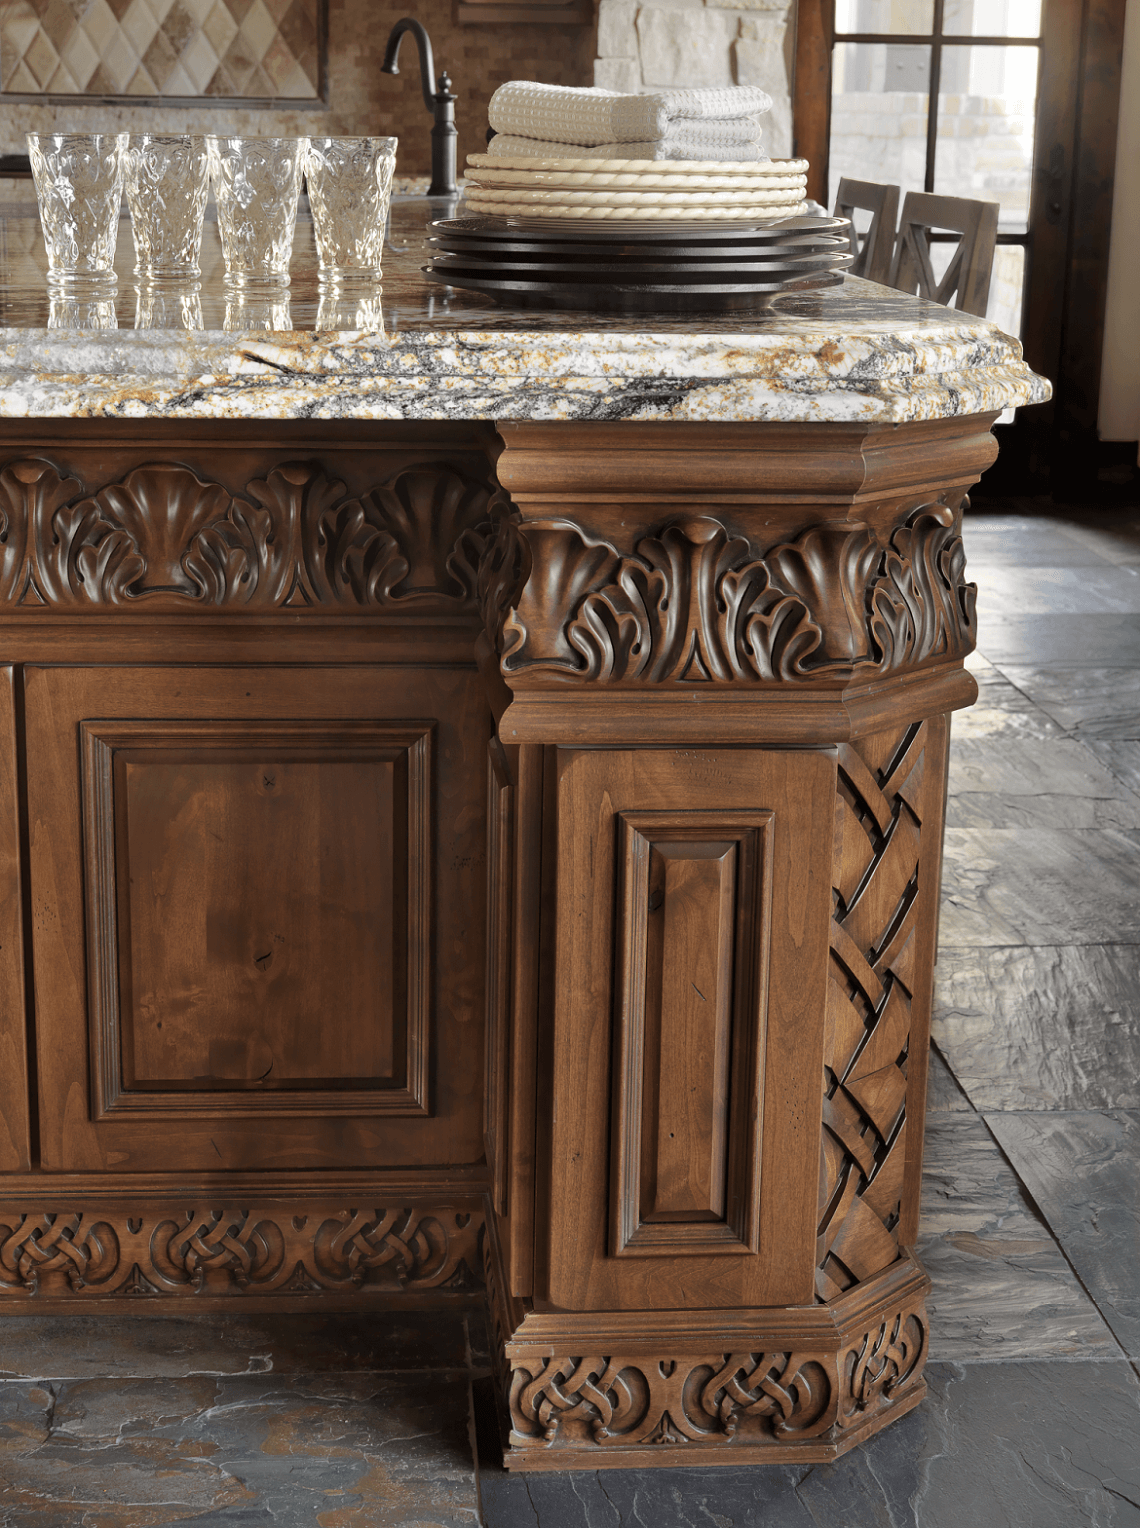 Custom Kitchen Island custom kitchen island design - beck/allen cabinetry